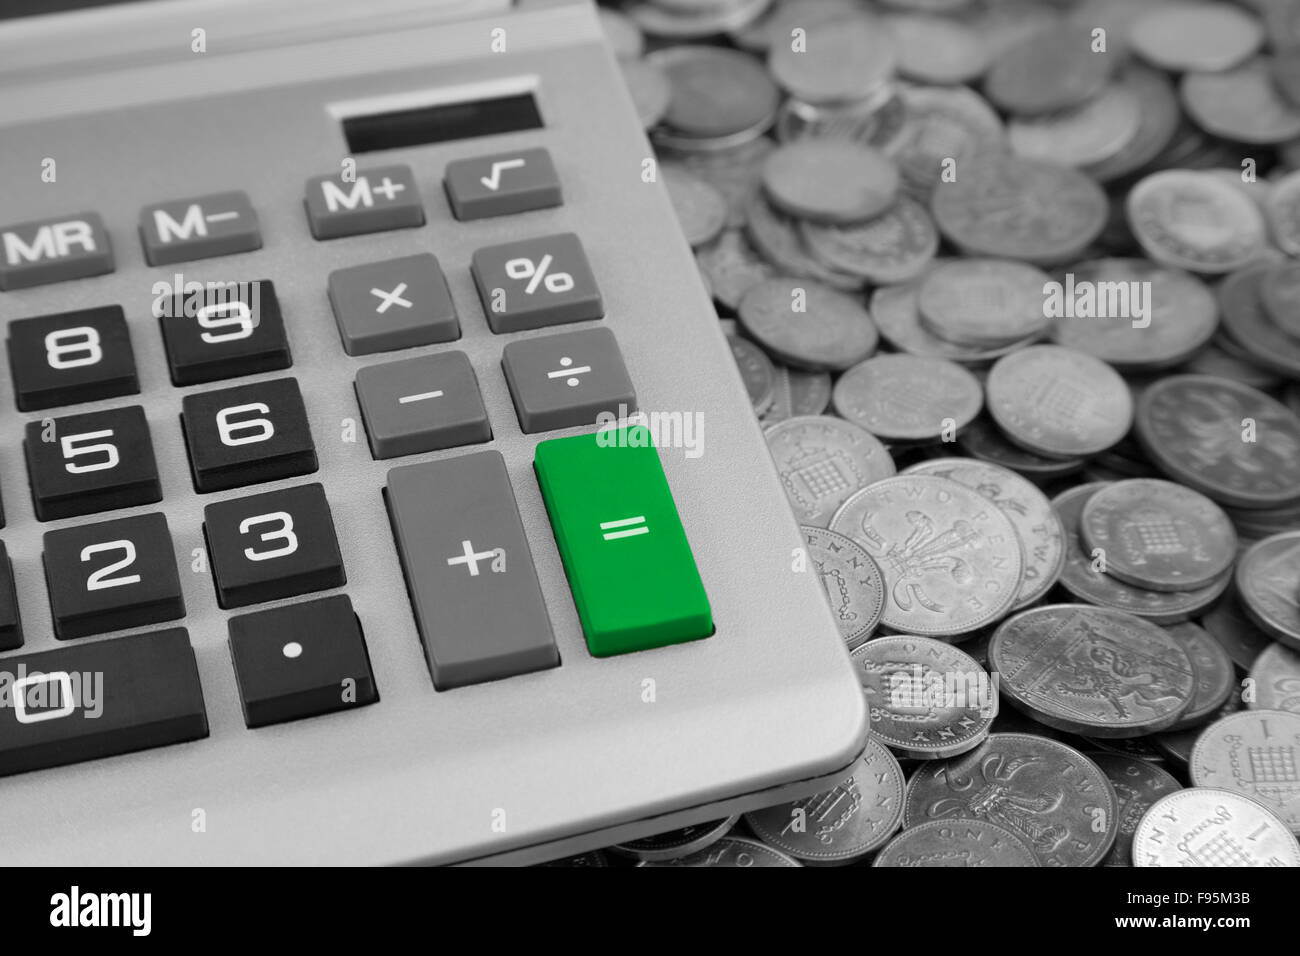 a desk Calculator with a green Equals button and Bank of england Stock Photo